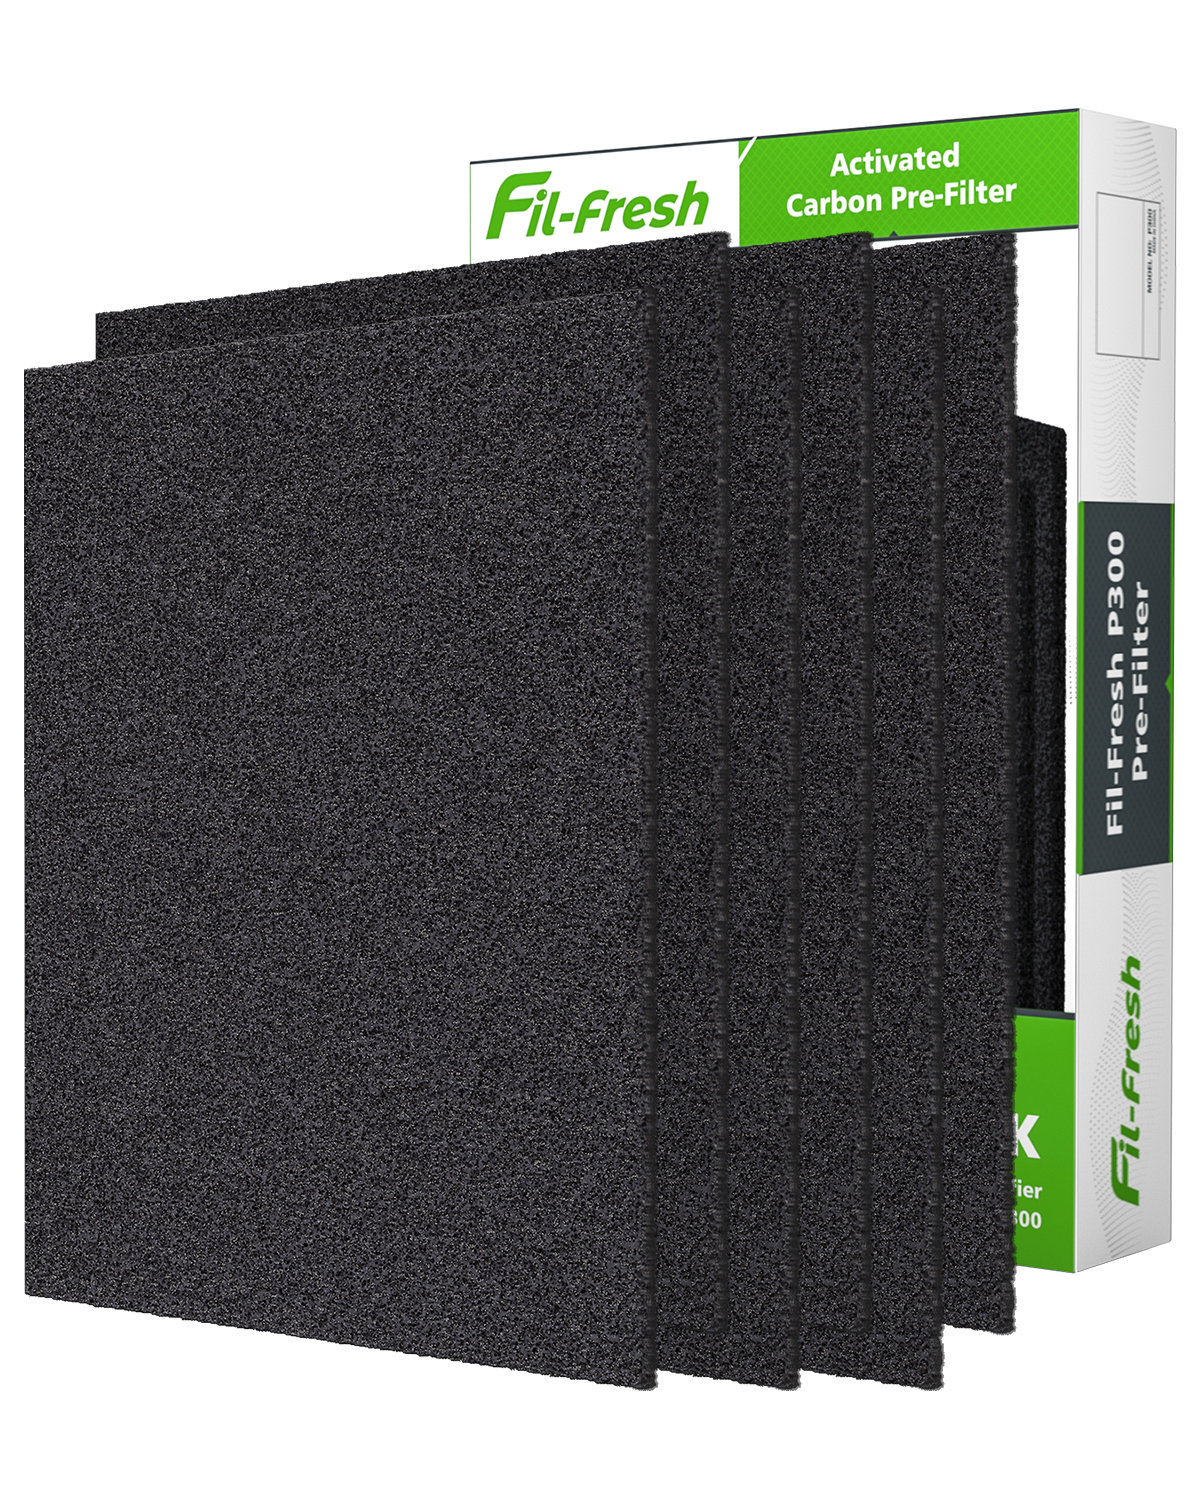 Fil-fresh HPA300 Carbon Pre Filters Replacement for Honeywell HPA300 Air Purifier, Precut Activated Carbon Pre-Filters, 6 Pack Odor-Reducing Pre Filters for 1-Year Use